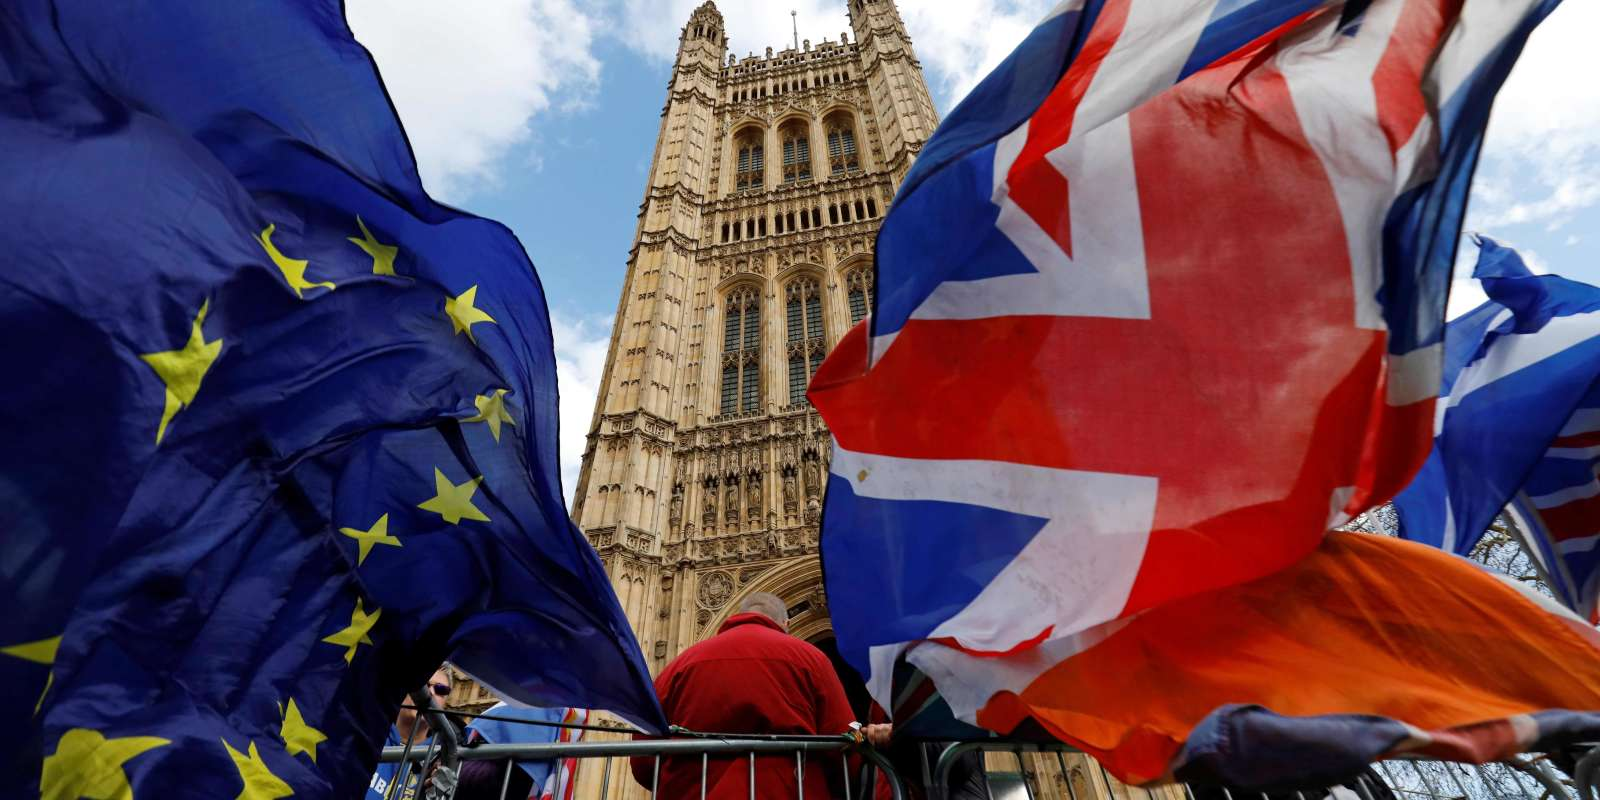 Pro-Brexit and anti-Brexit protesters hold flags as they demonstrate outside the Houses of Parliament in London on March 14, 2019 as members debate a motion on whether to seek a delay to Britain's exit from the EU. MPs vote on March 14 on whether to seek a Brexit delay, as the chaotic process to end Britain's 46-year membership of the EU plunges the country into deep political crisis. / AFP / Tolga AKMEN